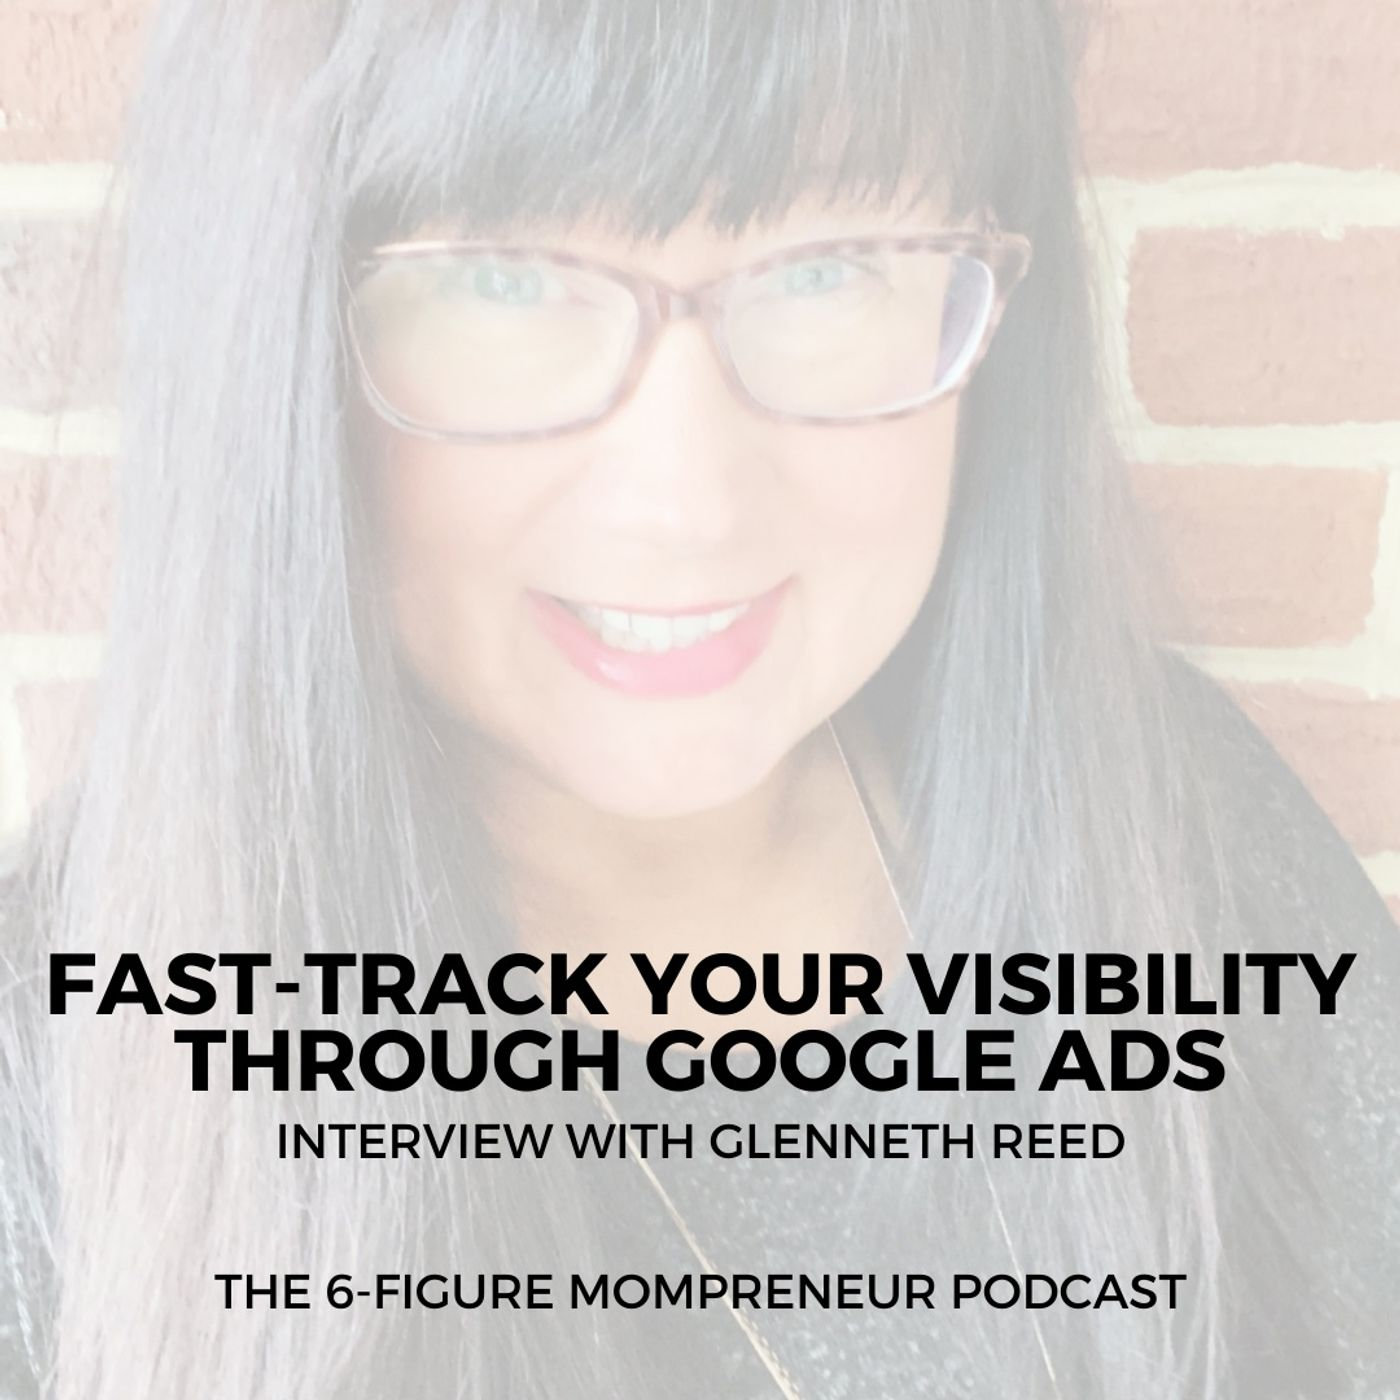 Fast-track your visibility through Google Ads with Glenneth Reed